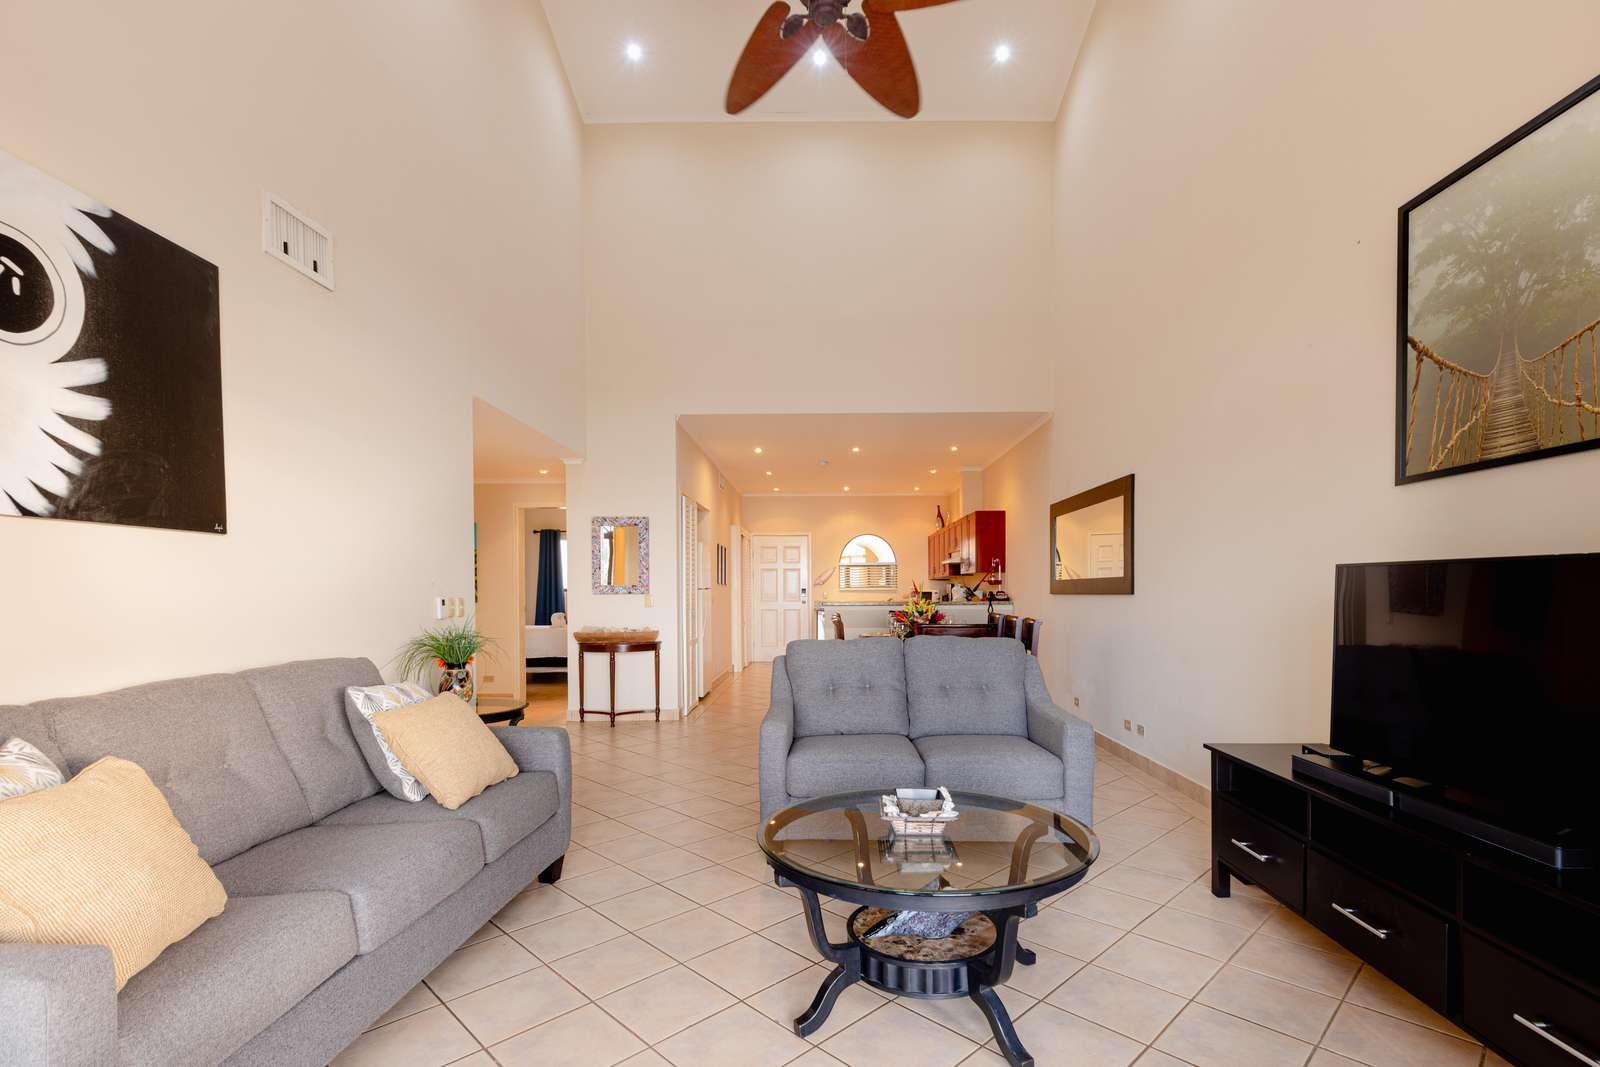 Spacious living area, view towards kitchen and dining area